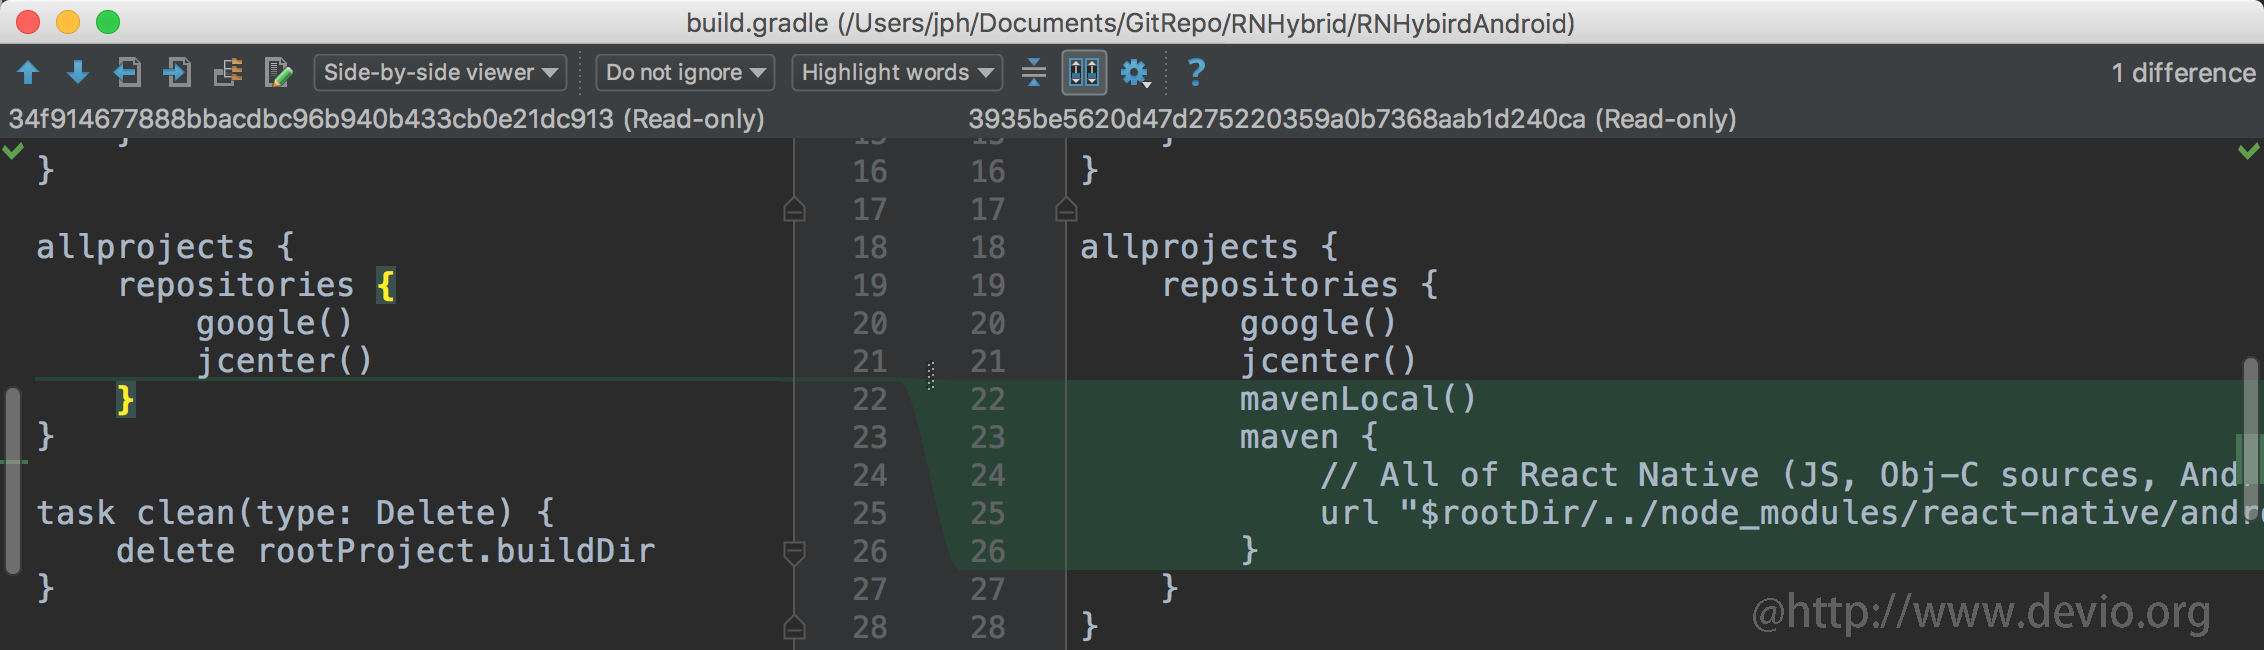 maven-directory-to-build.gradle